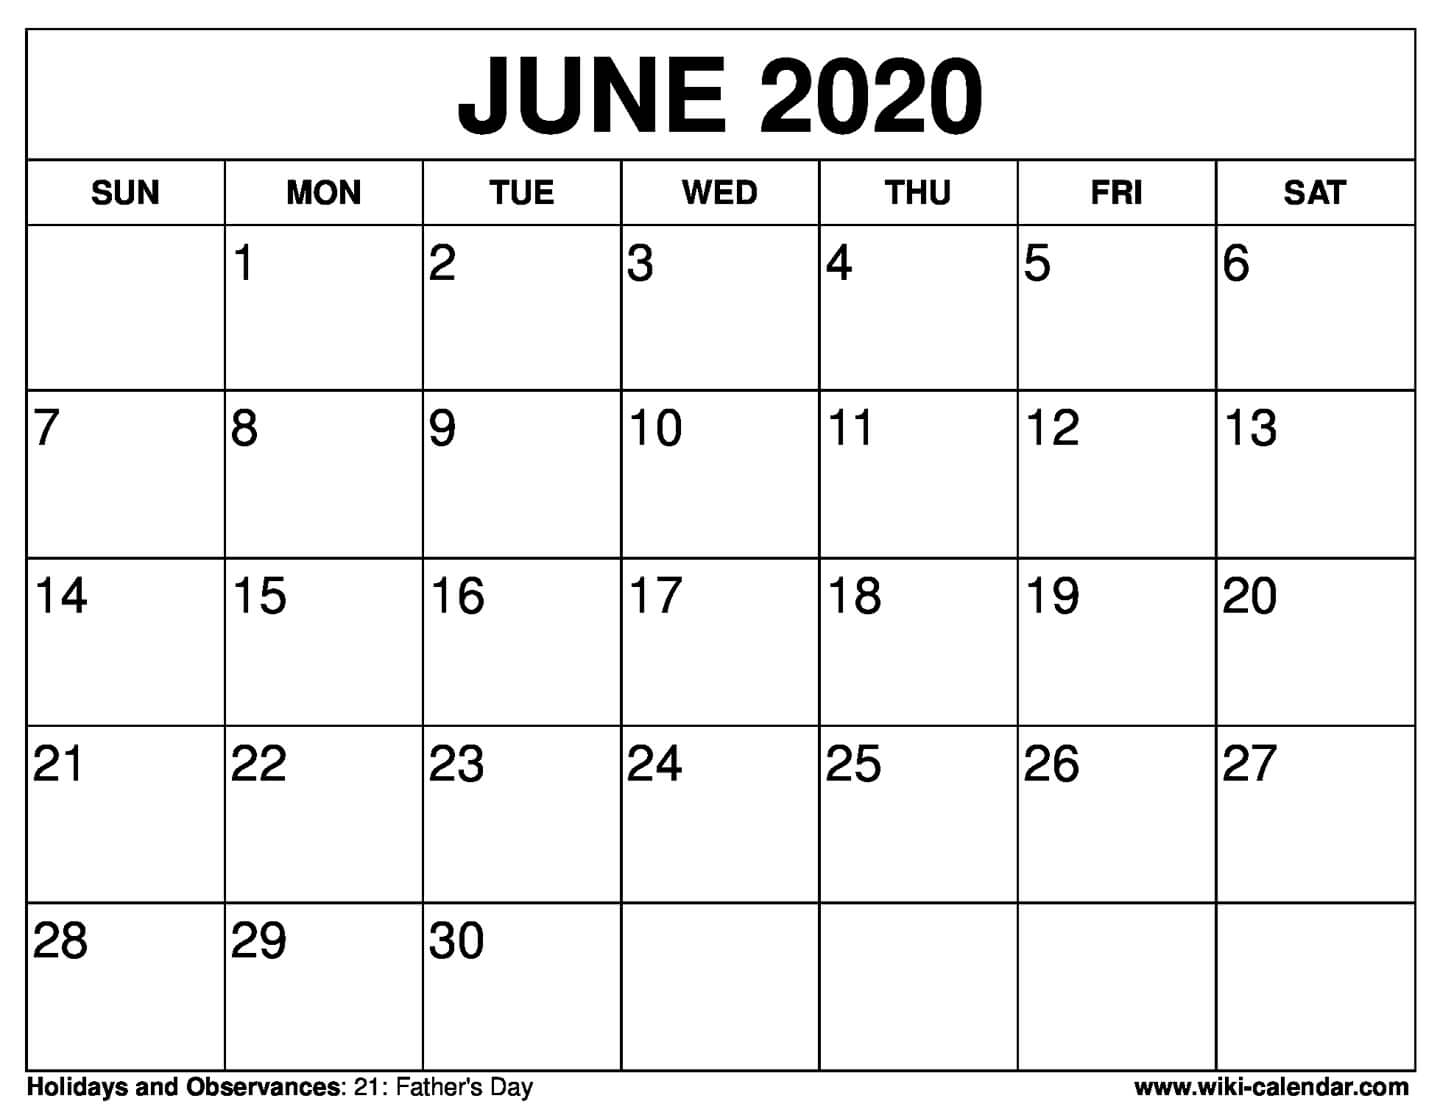 photo regarding June Printable Calendar named Cost-free Printable June 2020 Calendar